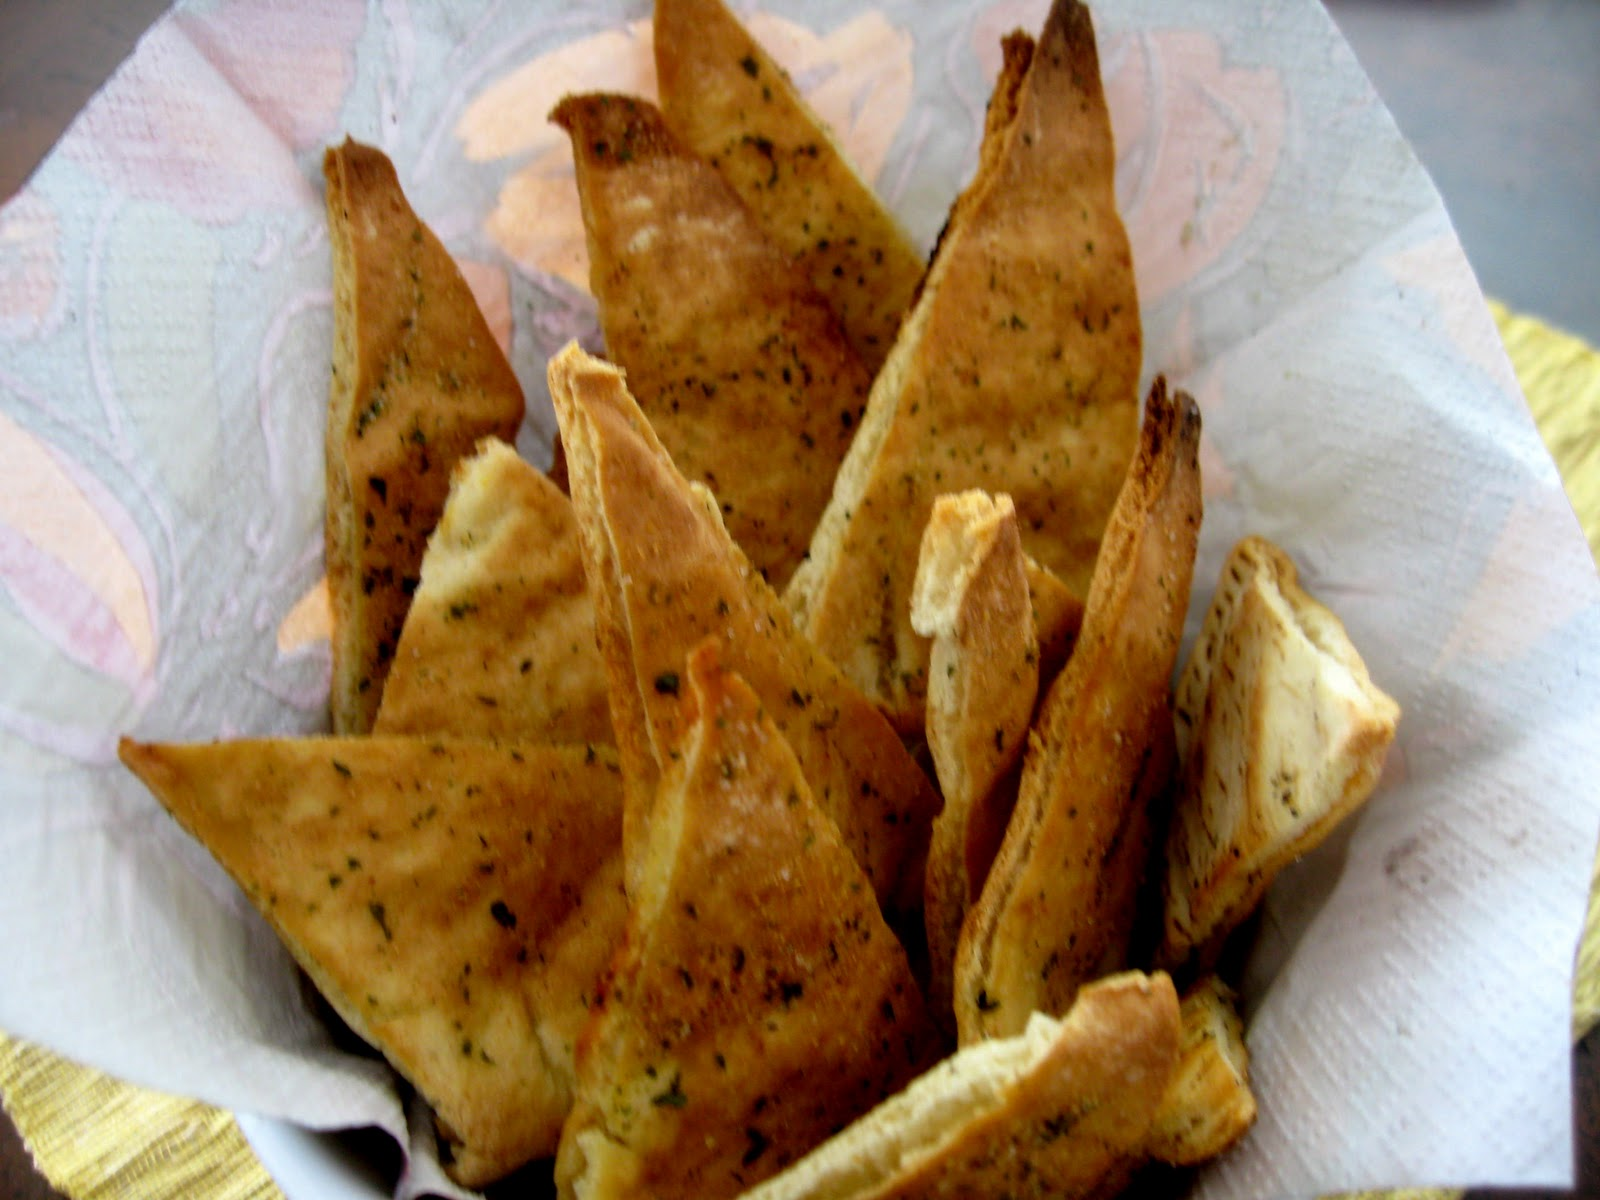 Pita Chips oven baked very easy | Sugar Baking Blog